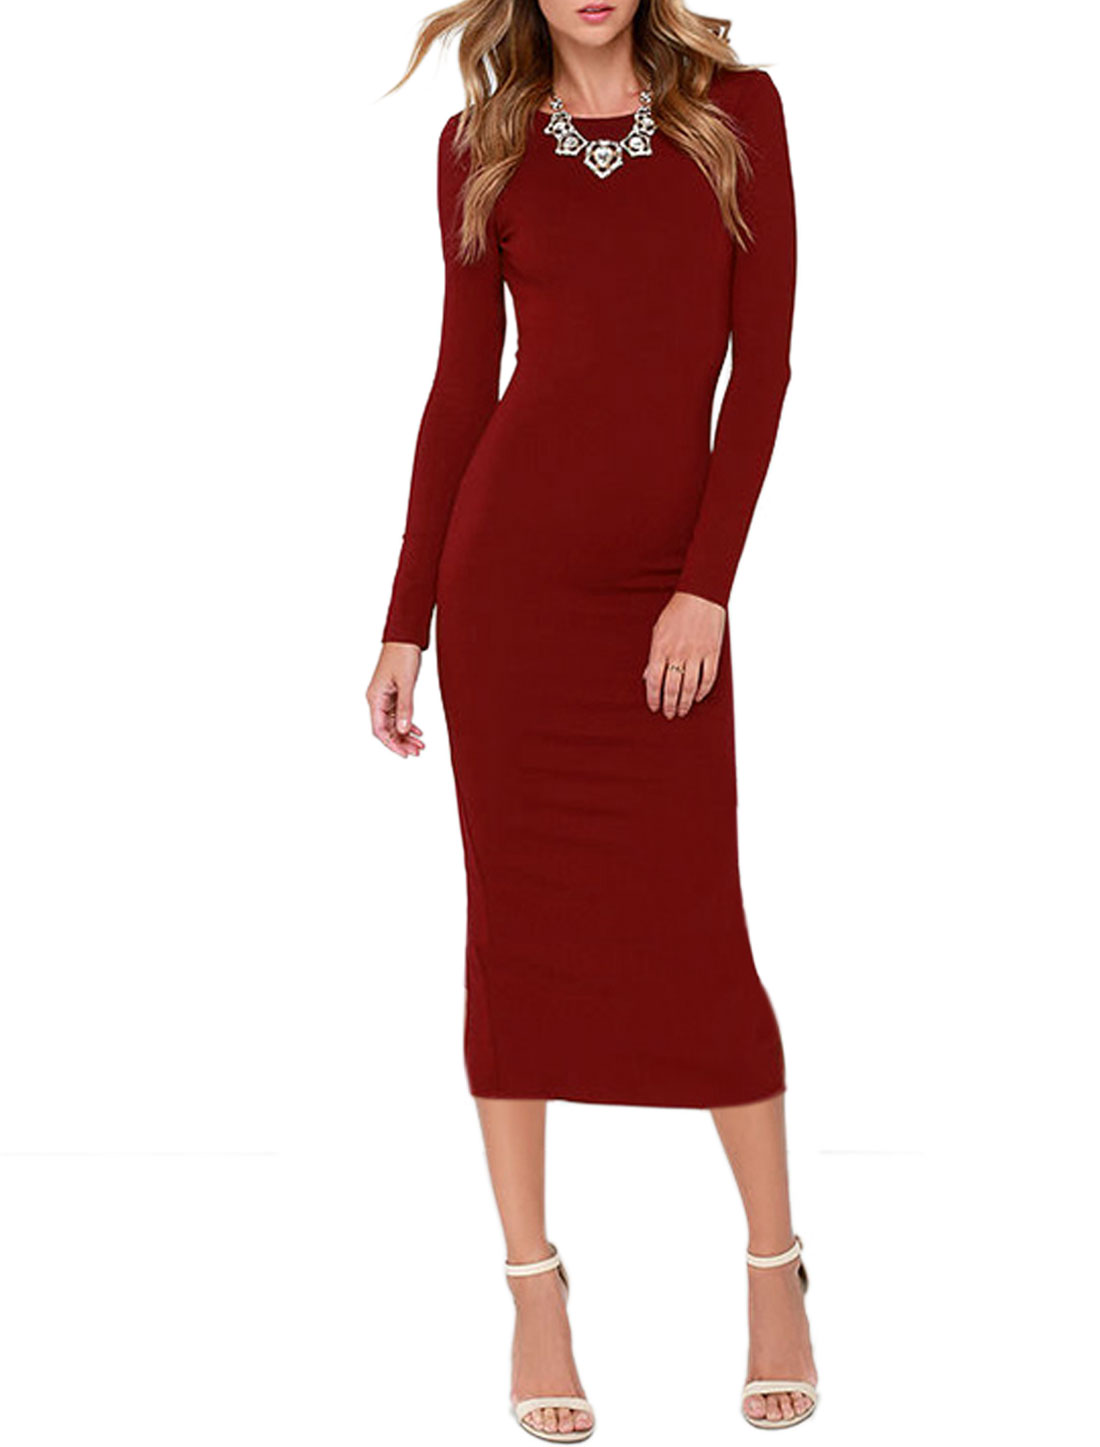 Women Long Sleeves Round Neck Backless Split Pencil Dress Red S